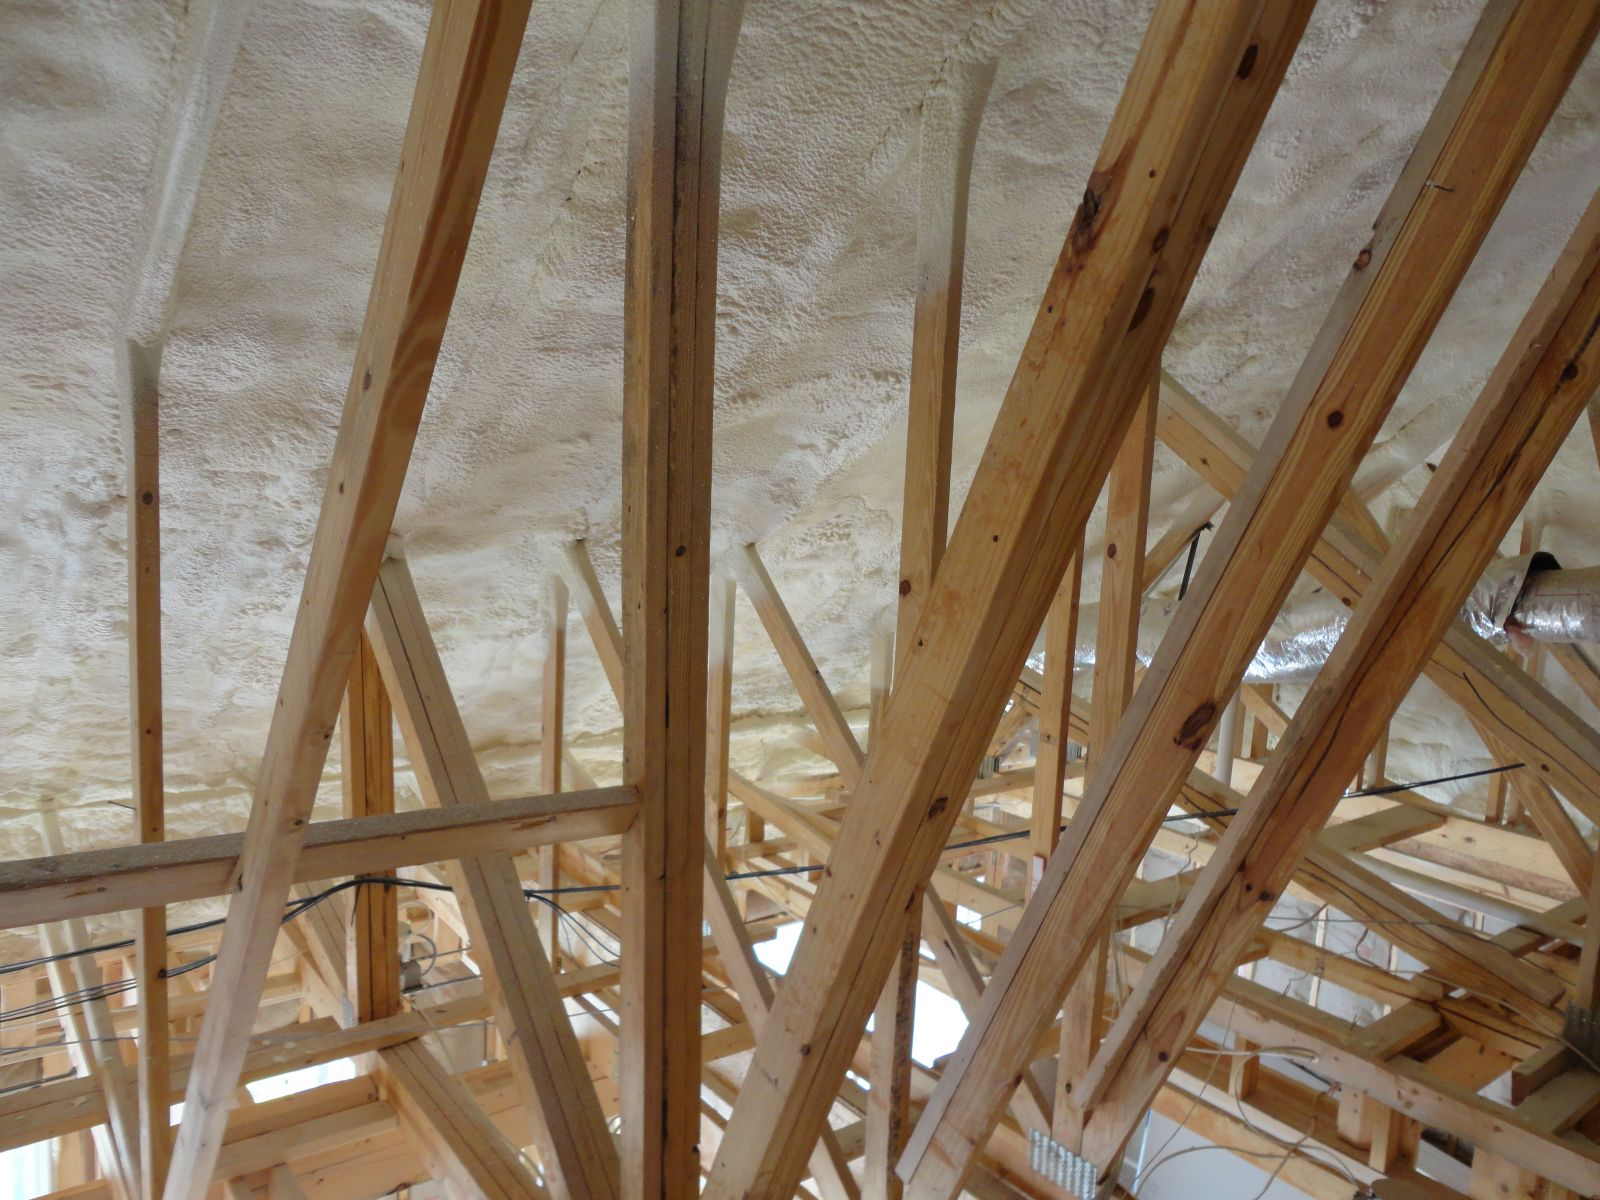 Tests show energy costs are lower when the attic is sealed. & Anchor Insulation: Insulation Company RI MA CT